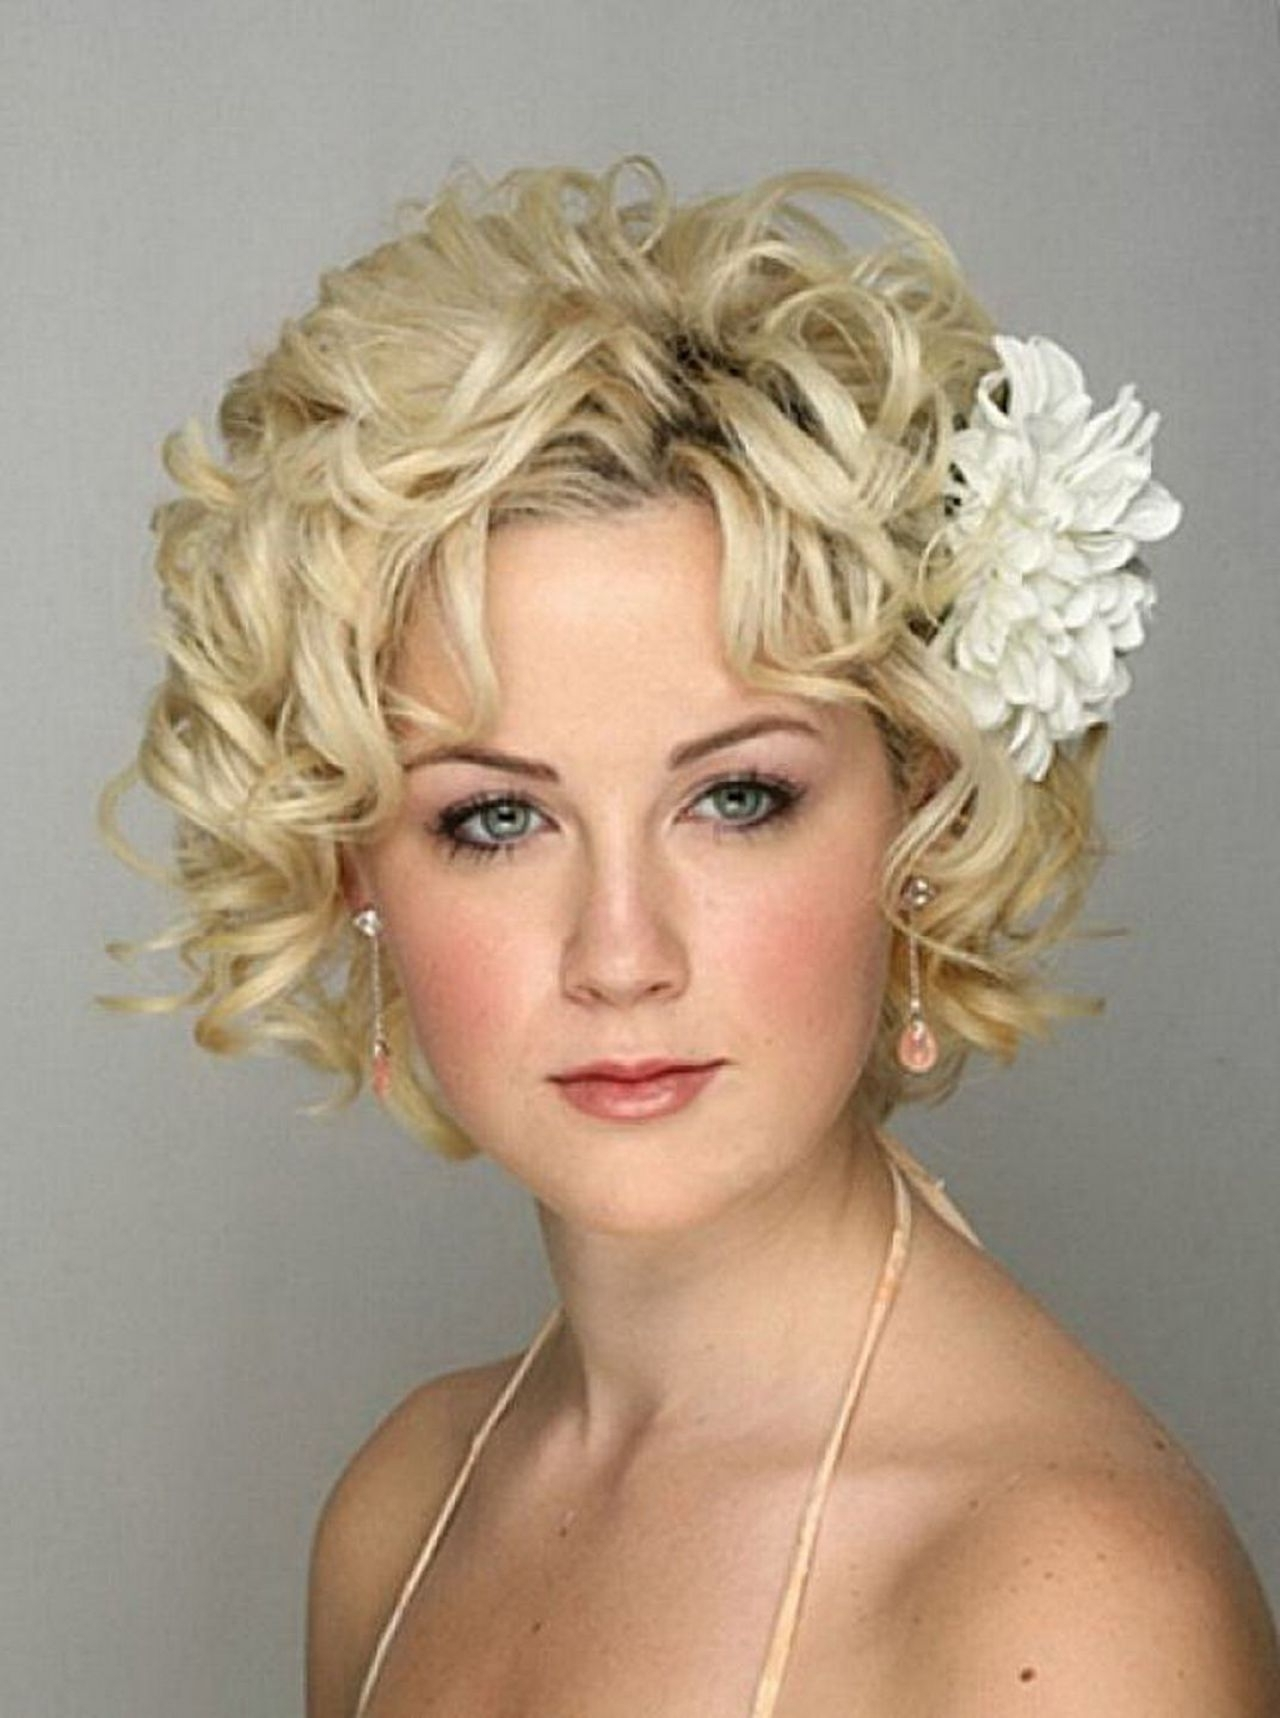 Wedding Hair Intended For Recent Wedding Hairstyles For Short Hair With Veil (View 4 of 15)